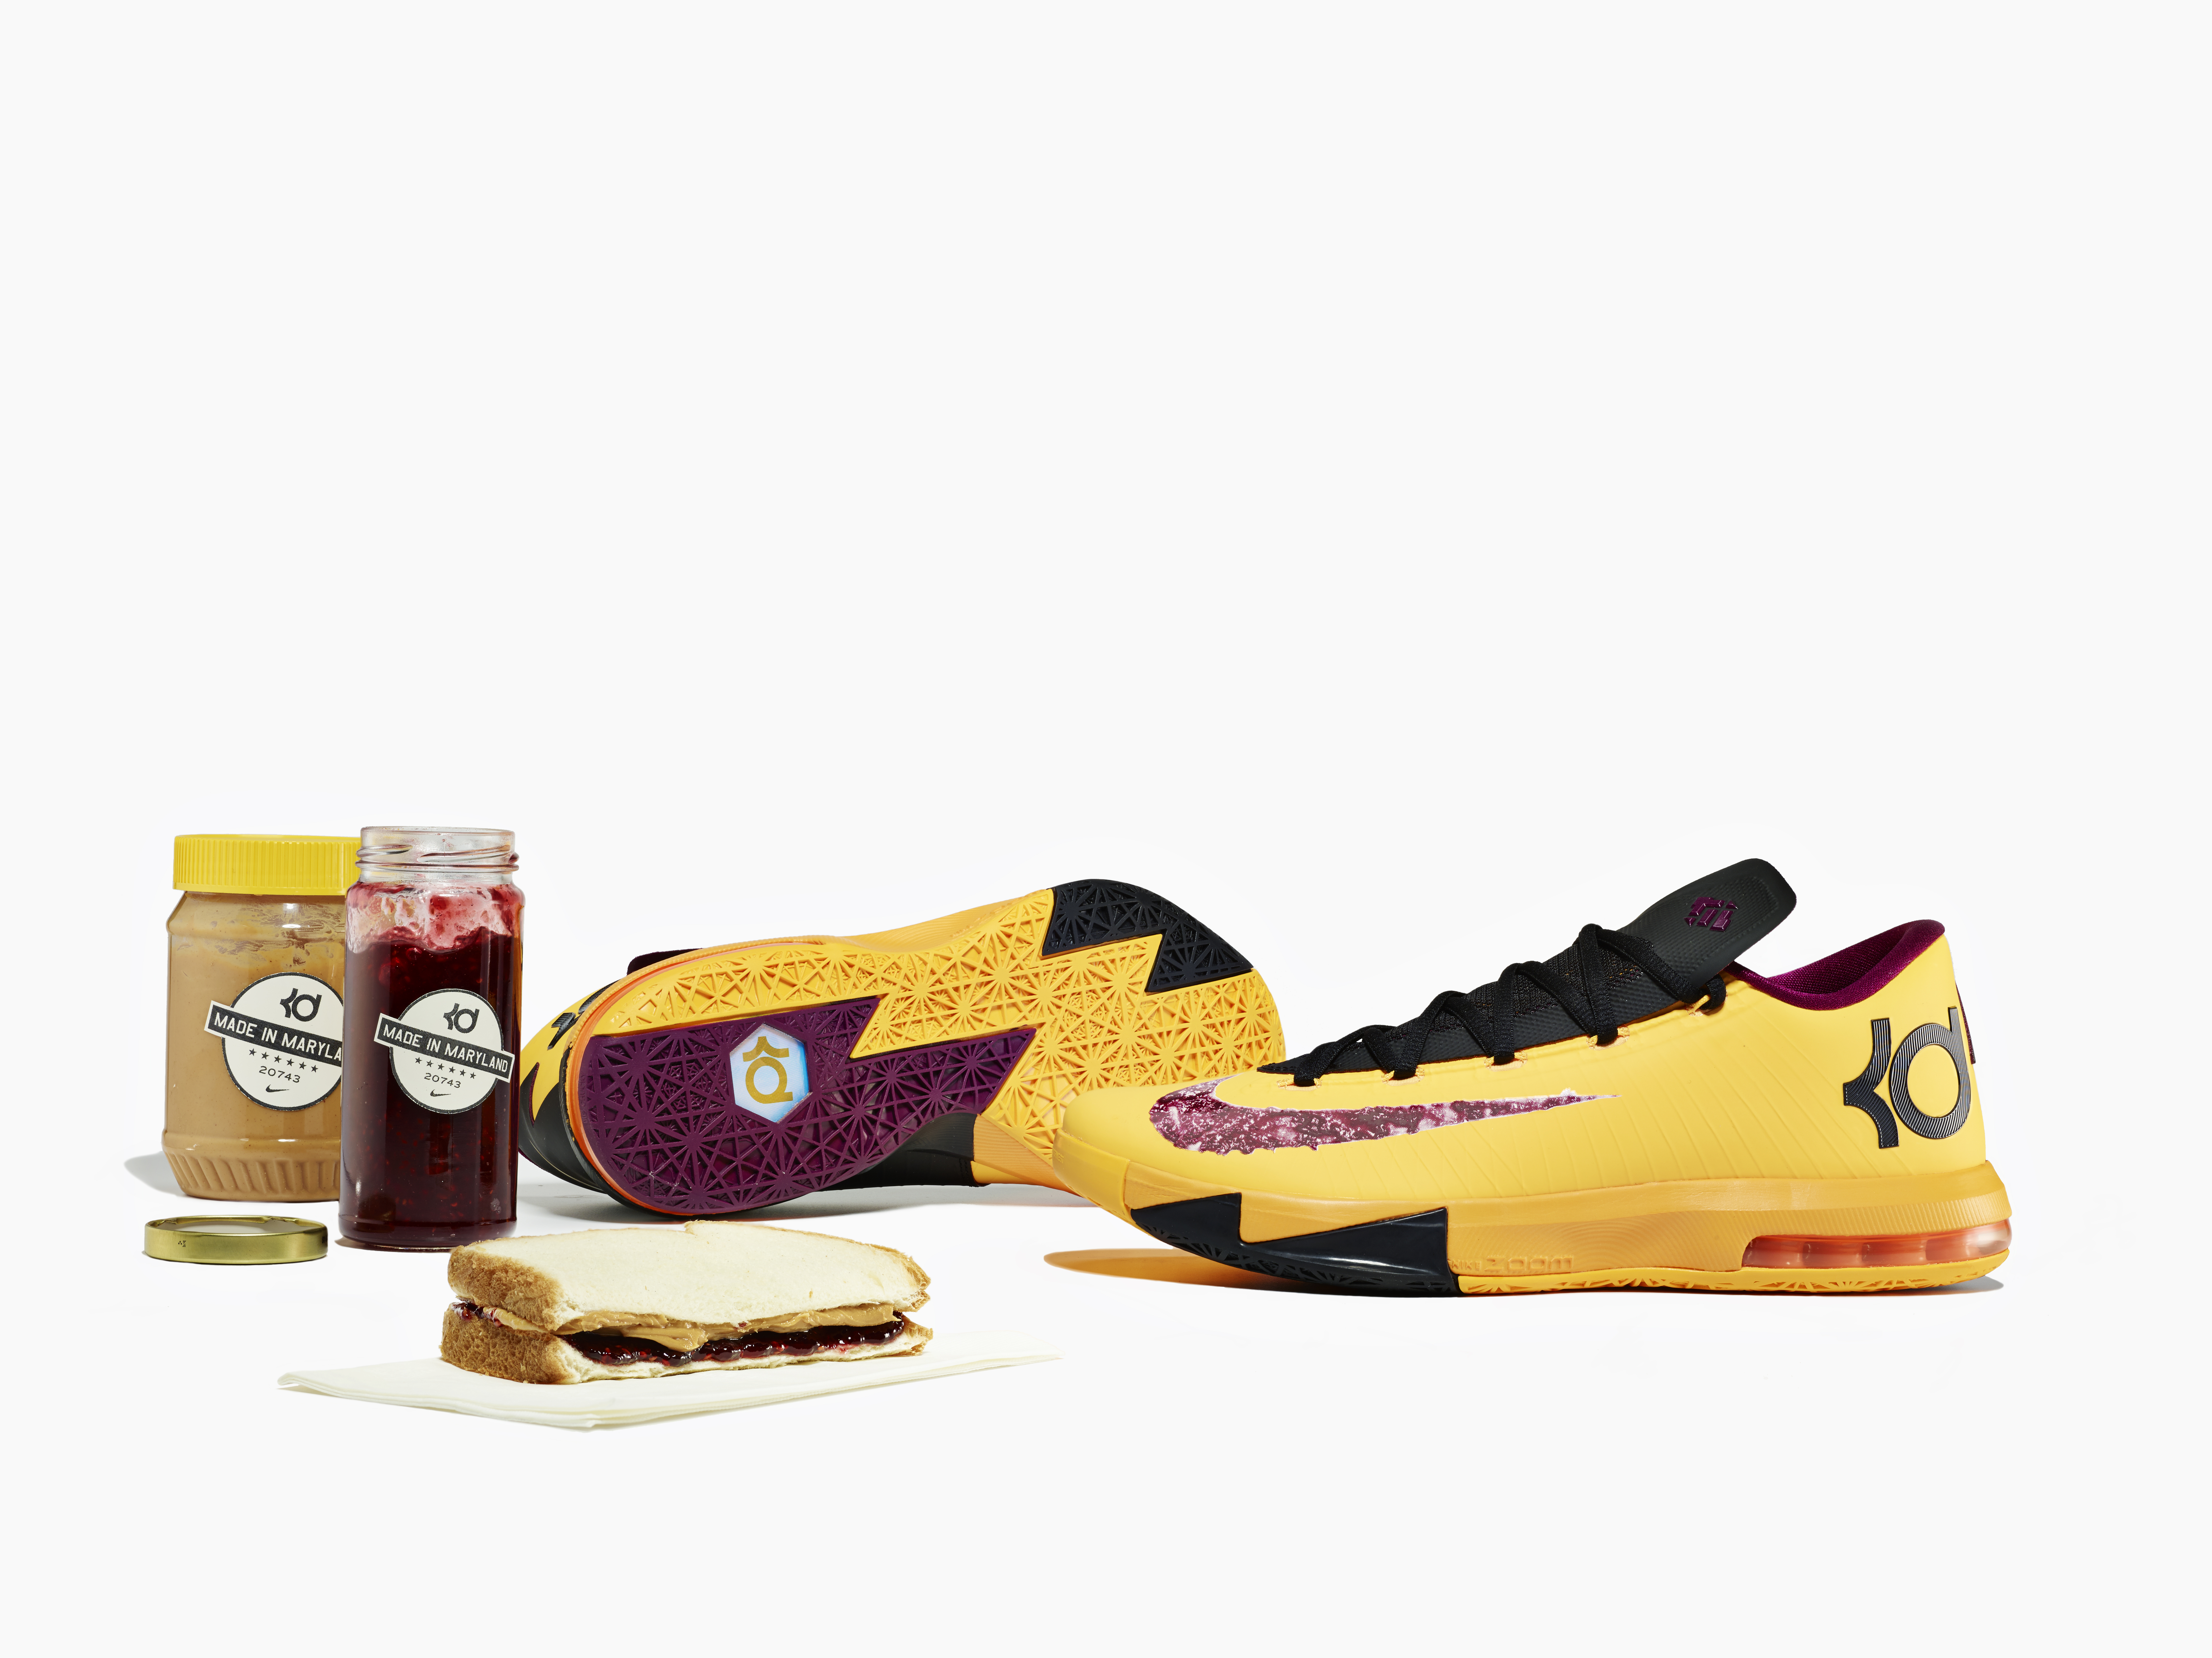 bc7ae165e6e5 ... nike youth socks peanut butter and jelly ... kd 7 ...